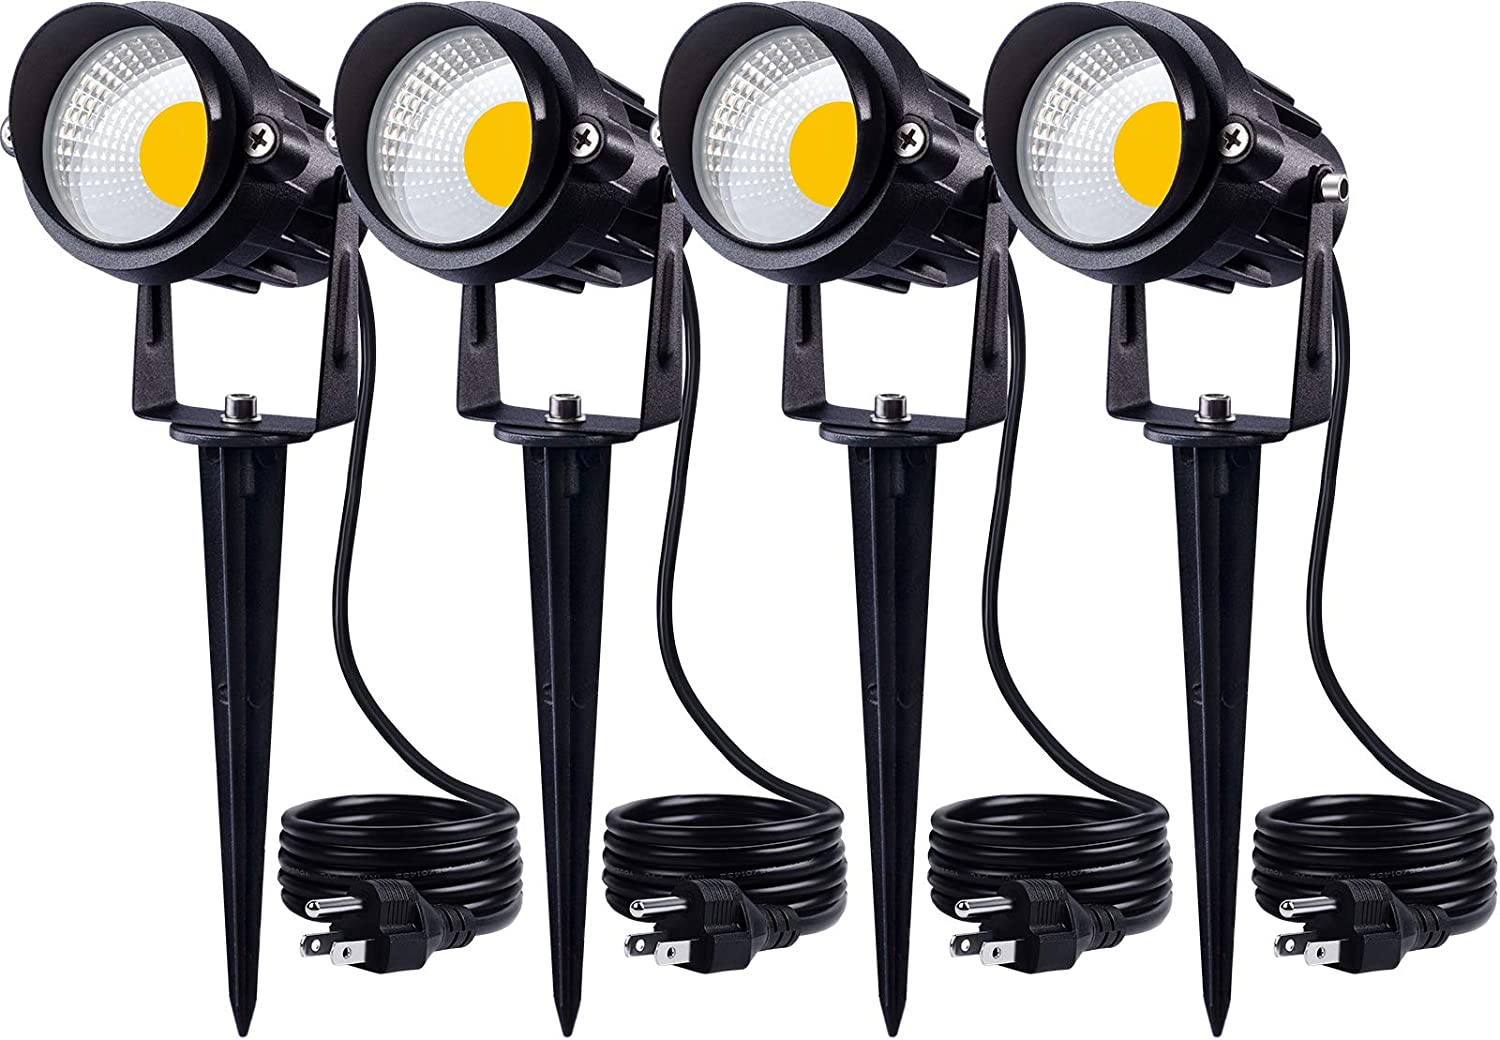 SUNVIE 12W Spot Lights Outdoor LED Landscape Lighting 120V AC Spotlights for Yard Waterproof Landscape Lights with Spiked Stake for Tree Garden Pathway Warm White Flag Lights with US 3-Plug In(4 Pack)